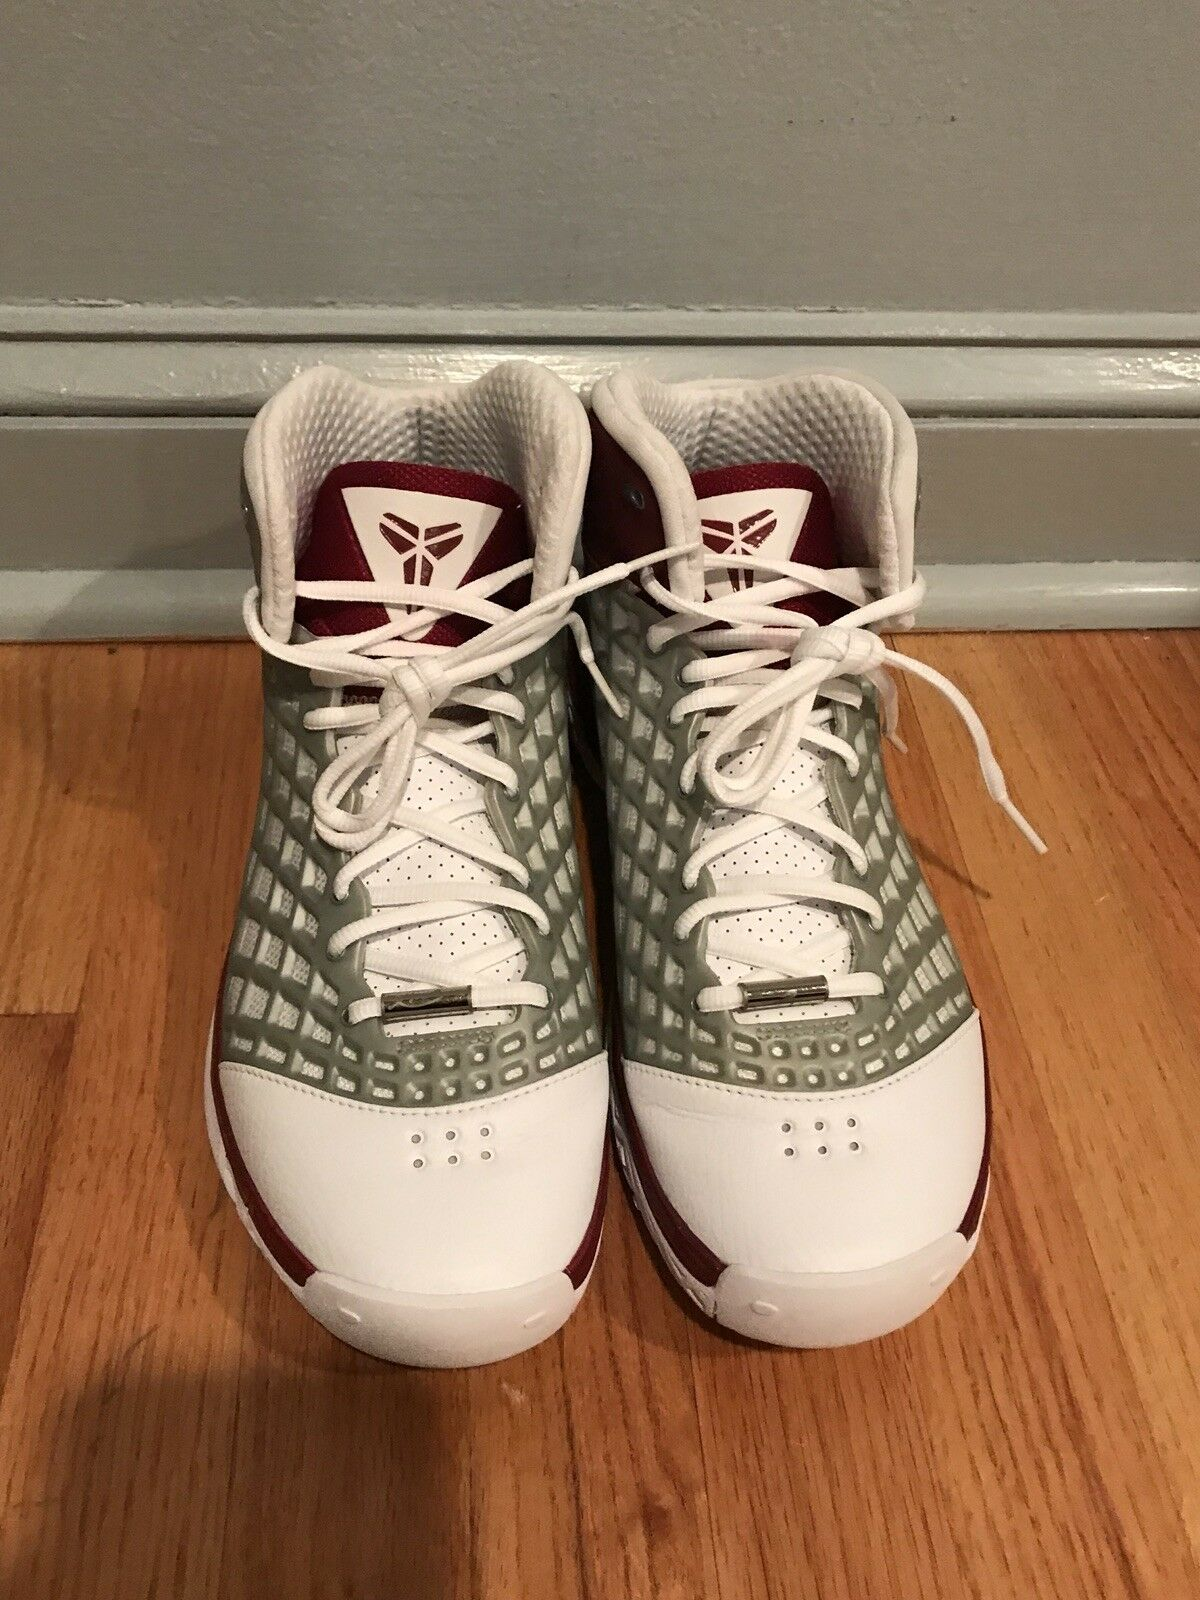 Nike Zoom KOBE III 3 LOWER MERION ACES ALL-STAR WHITE SILVER TEAM RED GREY 9.5